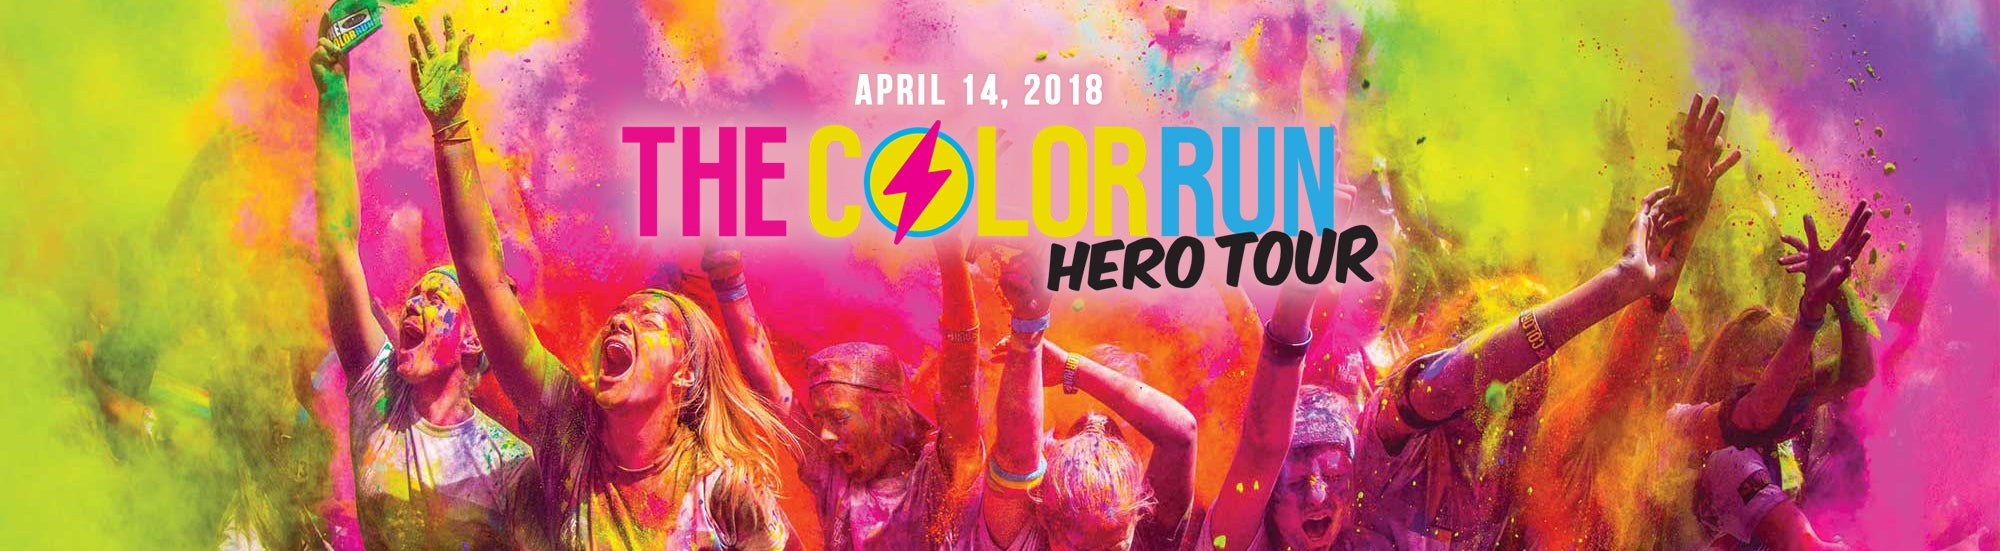 ColorRun2018Header.jpg